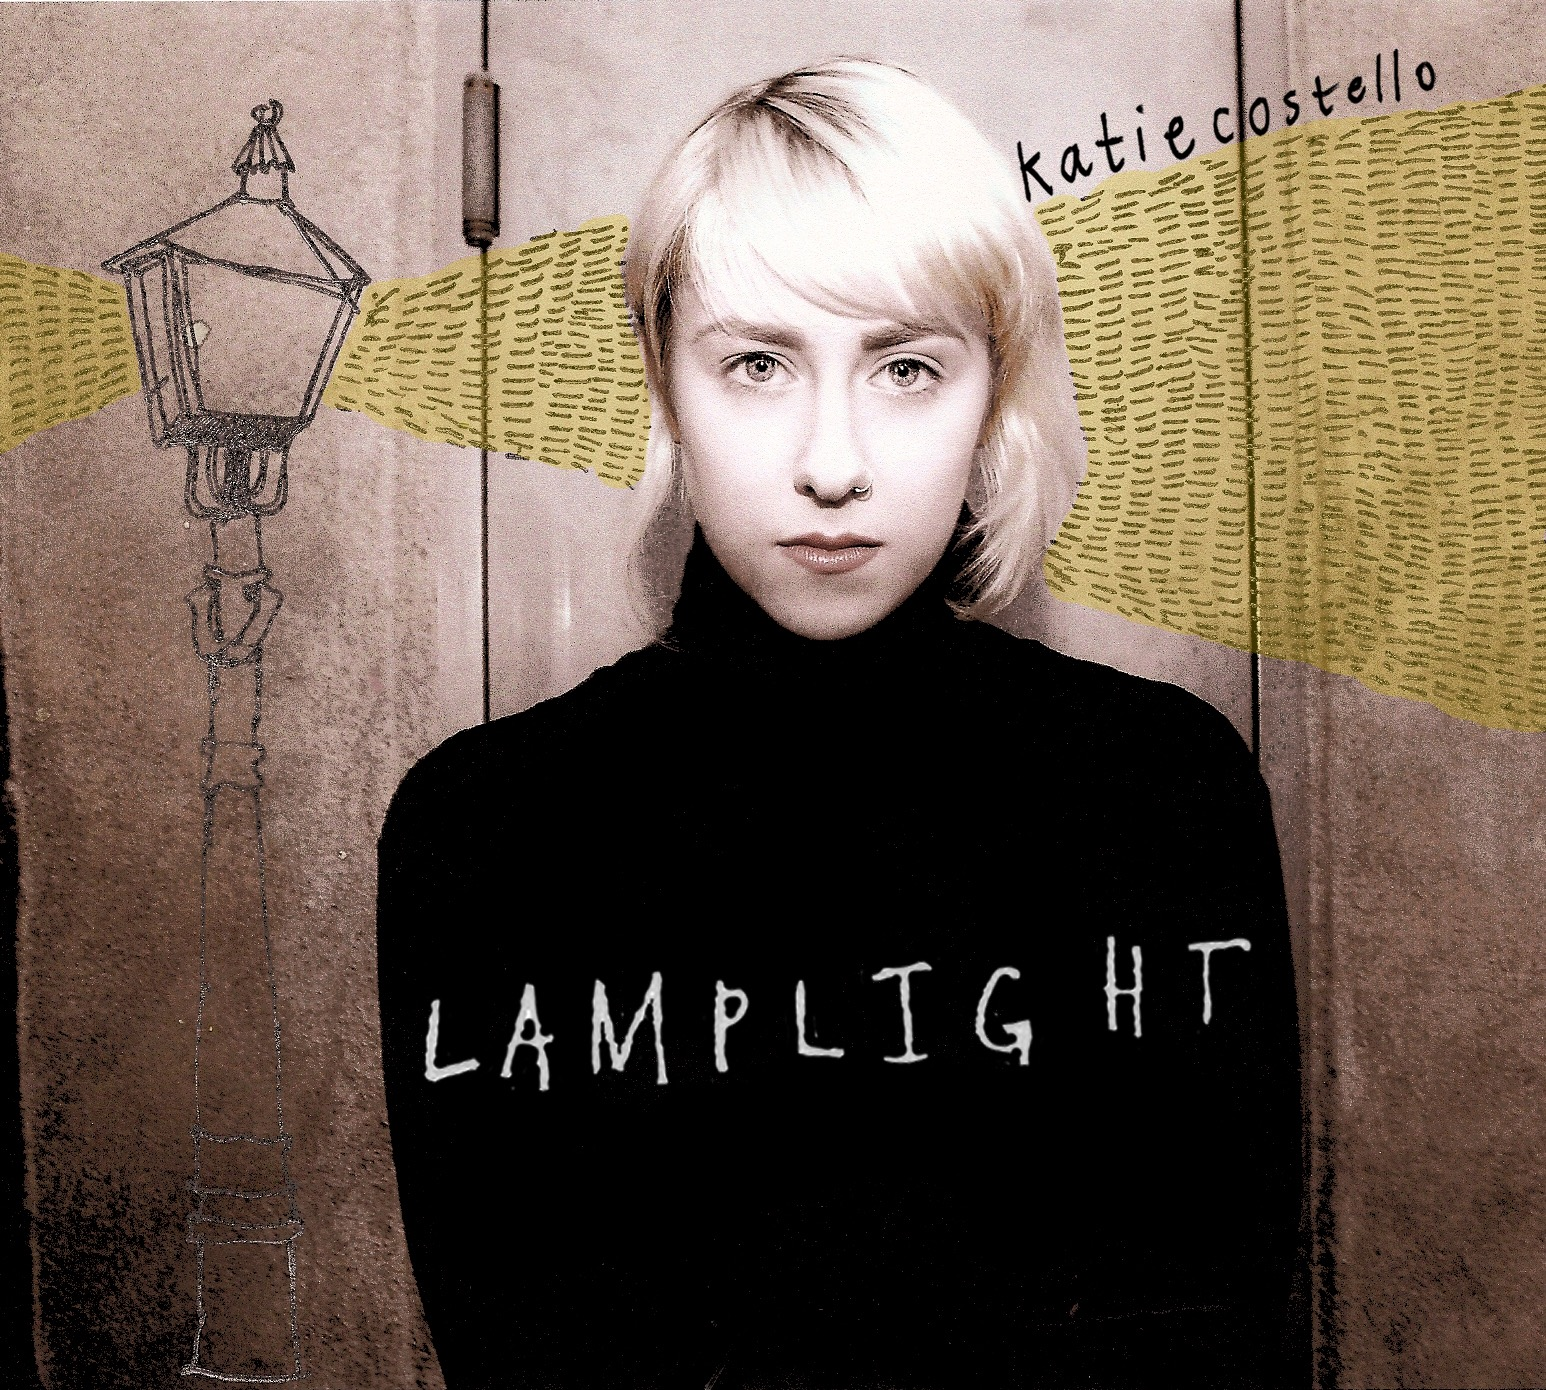 Lamplight - LP     1 Cassette Tape  2 Ashes Ashes  3 After Dark  4 No Shelter  5 Despite Time  6 Out Of Our Minds  7 Fading Lately  8 Dig A Hole  9 Old Owl  10 People: A Theory  11 The Weirds  12 Stranger     © Katie Costello |   REBEL POP Records |2011 |All Rights Reserved